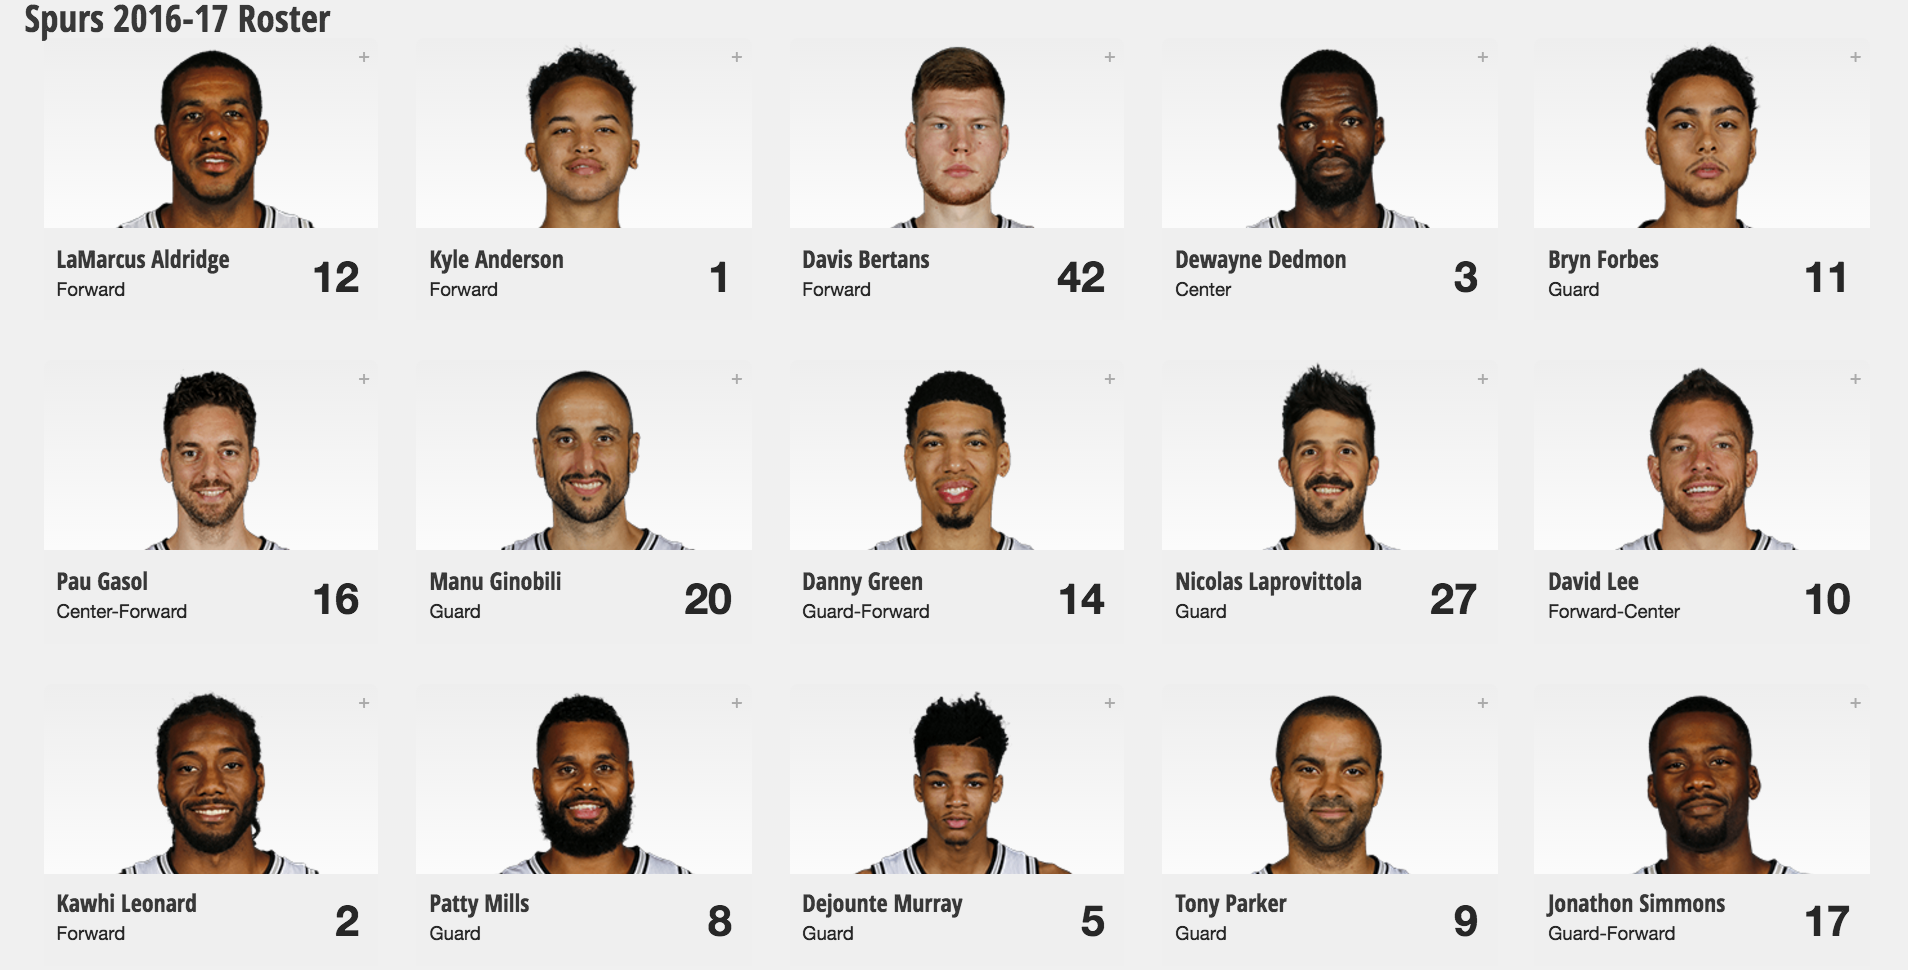 The Spurs' 2016-17 Roster Is Now Set | The Daily